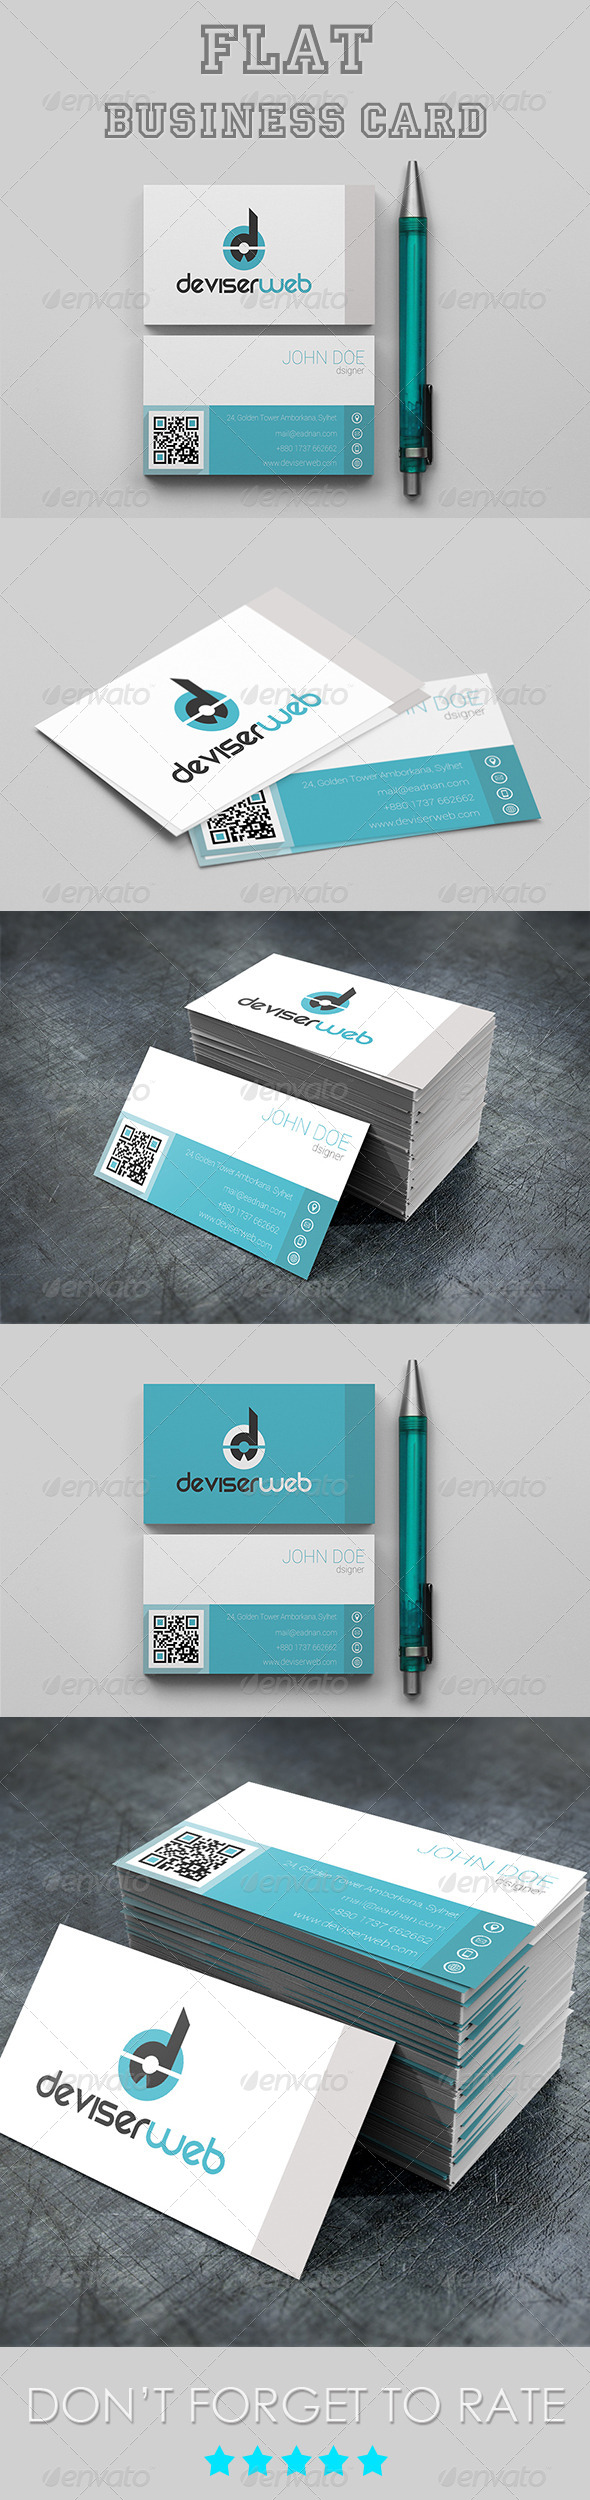 GraphicRiver Flat Business Card 5191951